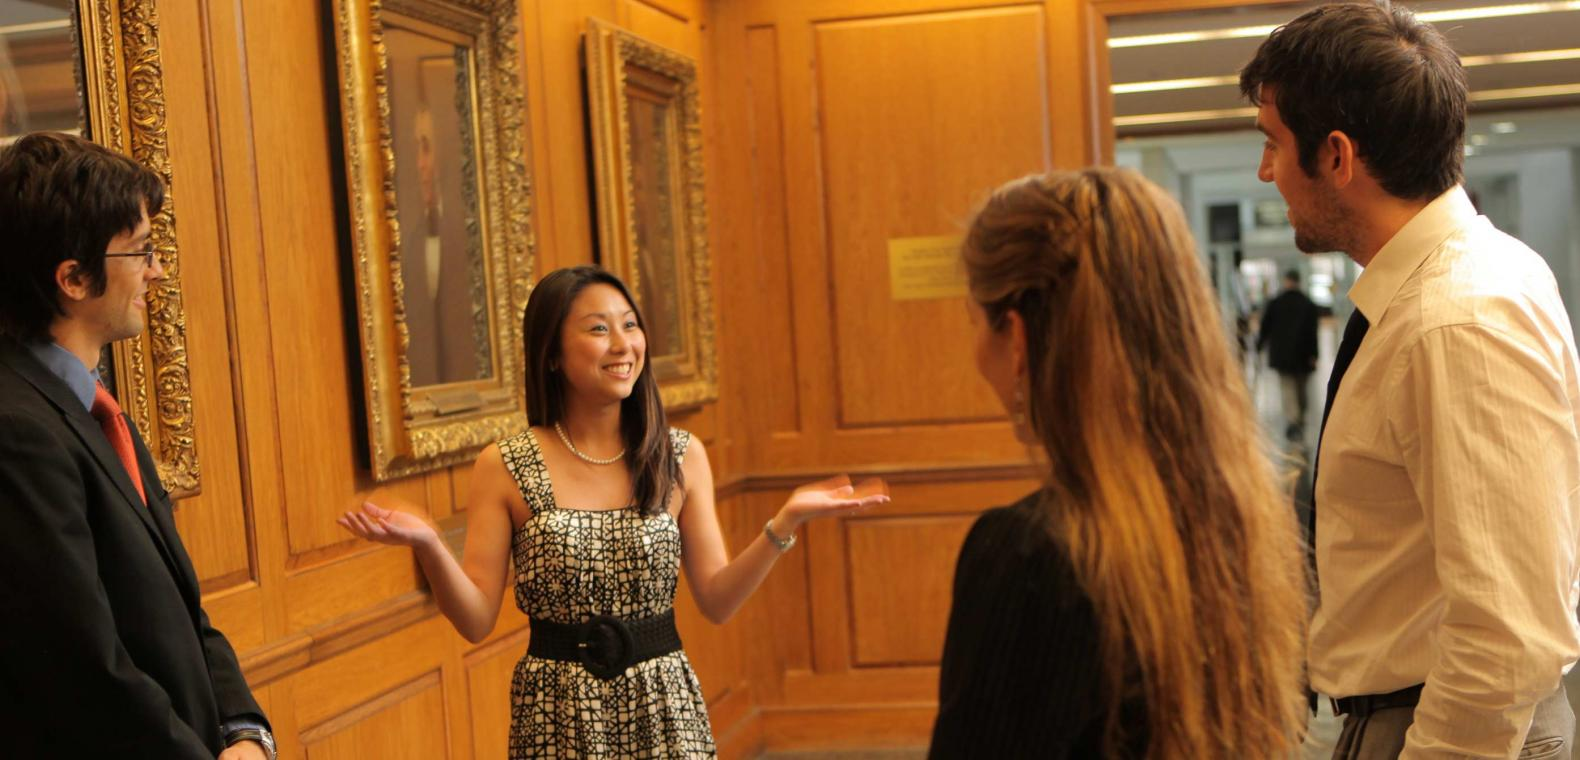 Student Gives Prospective Students a Tour